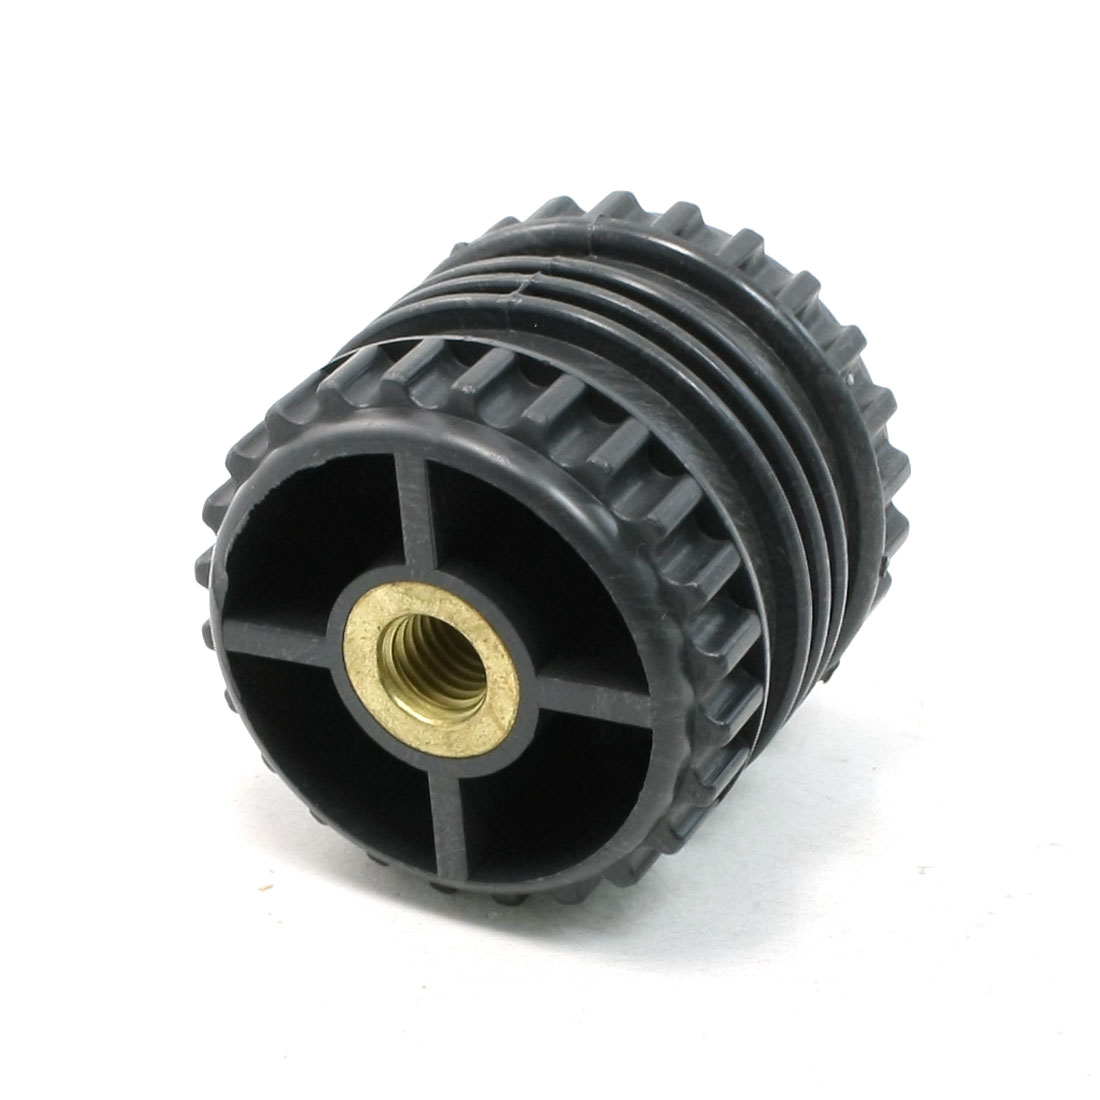 10mm Bore 50mm High Black Enhanced Insulator GGD50*50 for Bus Bar